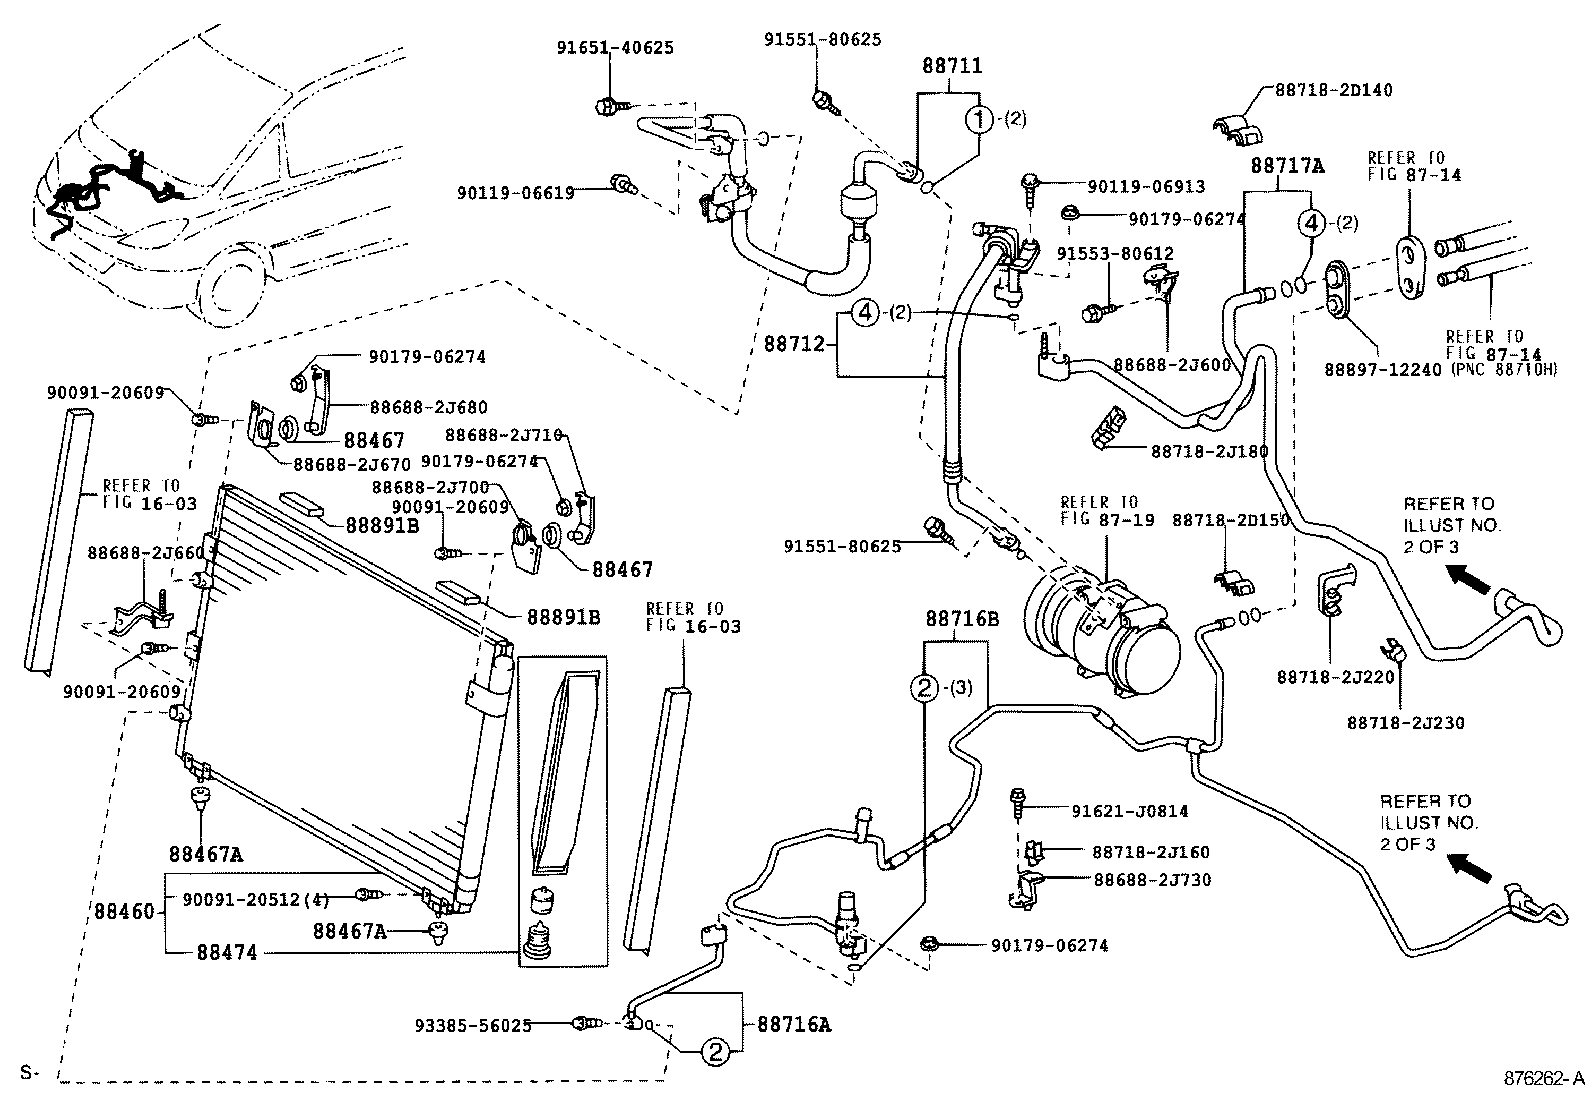 Toyota Previa Air Conditioning Wiring Diagram. Toyota